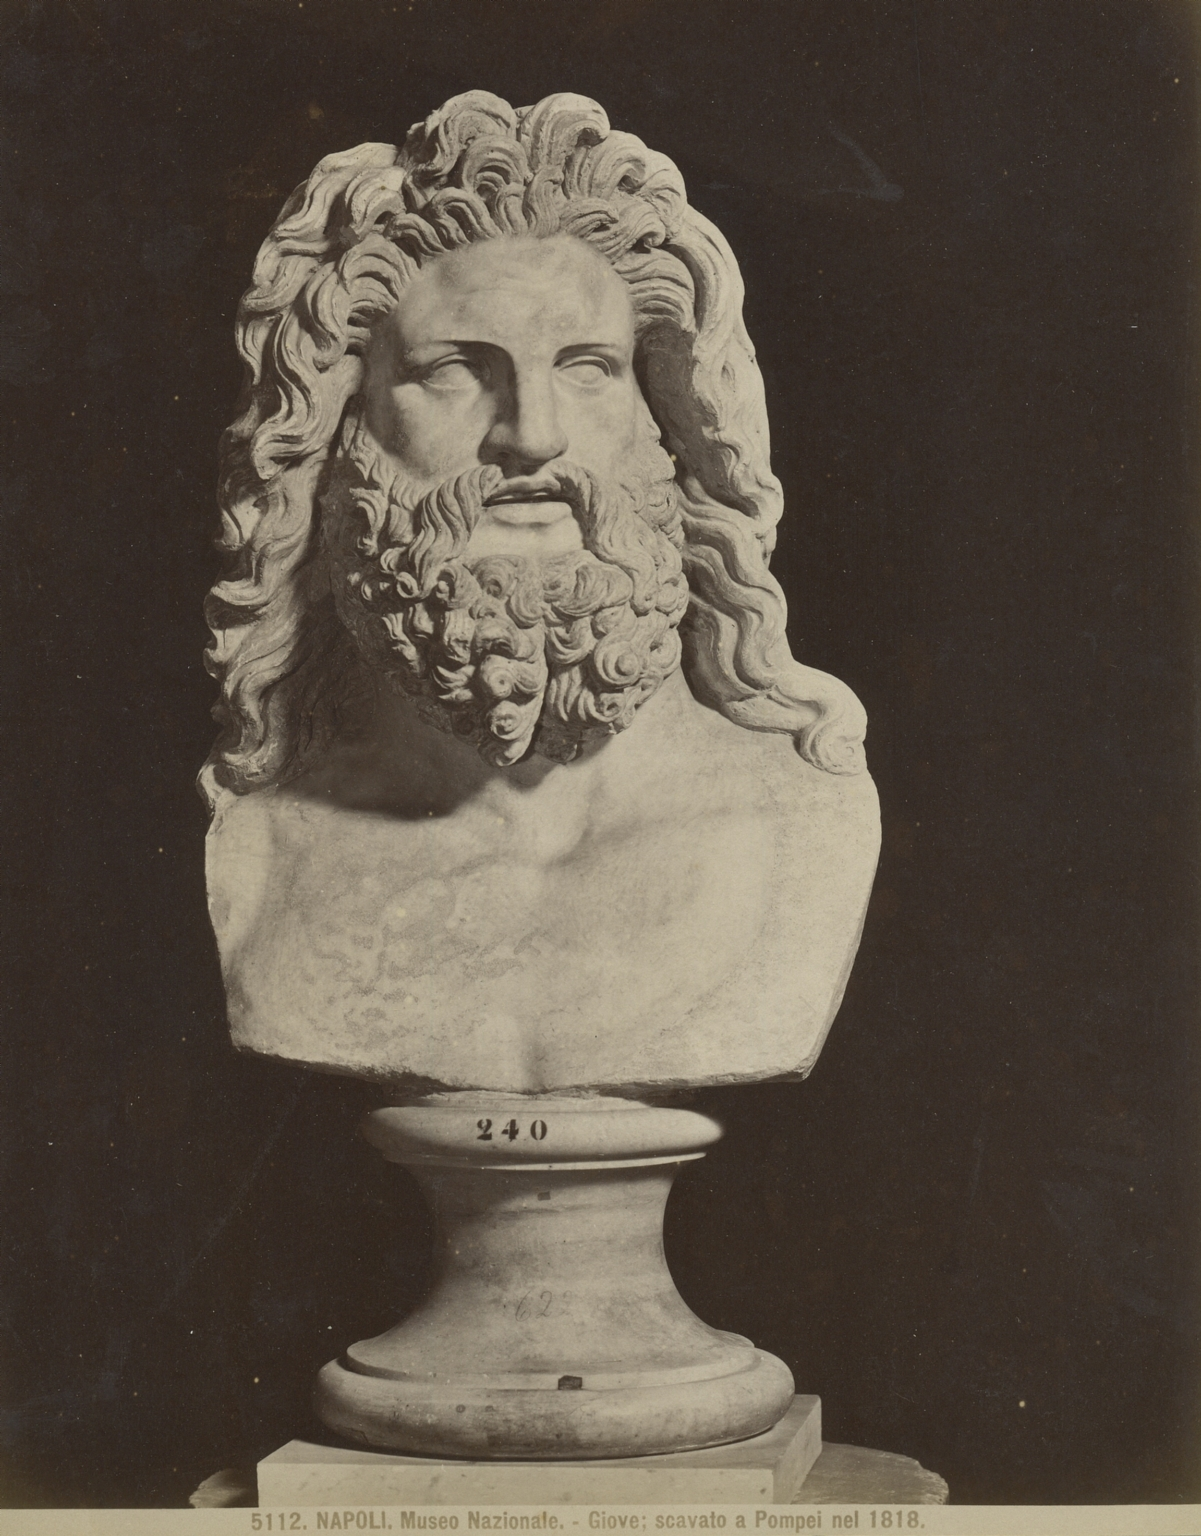 VII.8.1 Pompeii. Photo by Brogi, no. 5112. Head of Jupiter, found in 1818. Now in Naples Archaeological Museum. Photo courtesy of Rick Bauer.